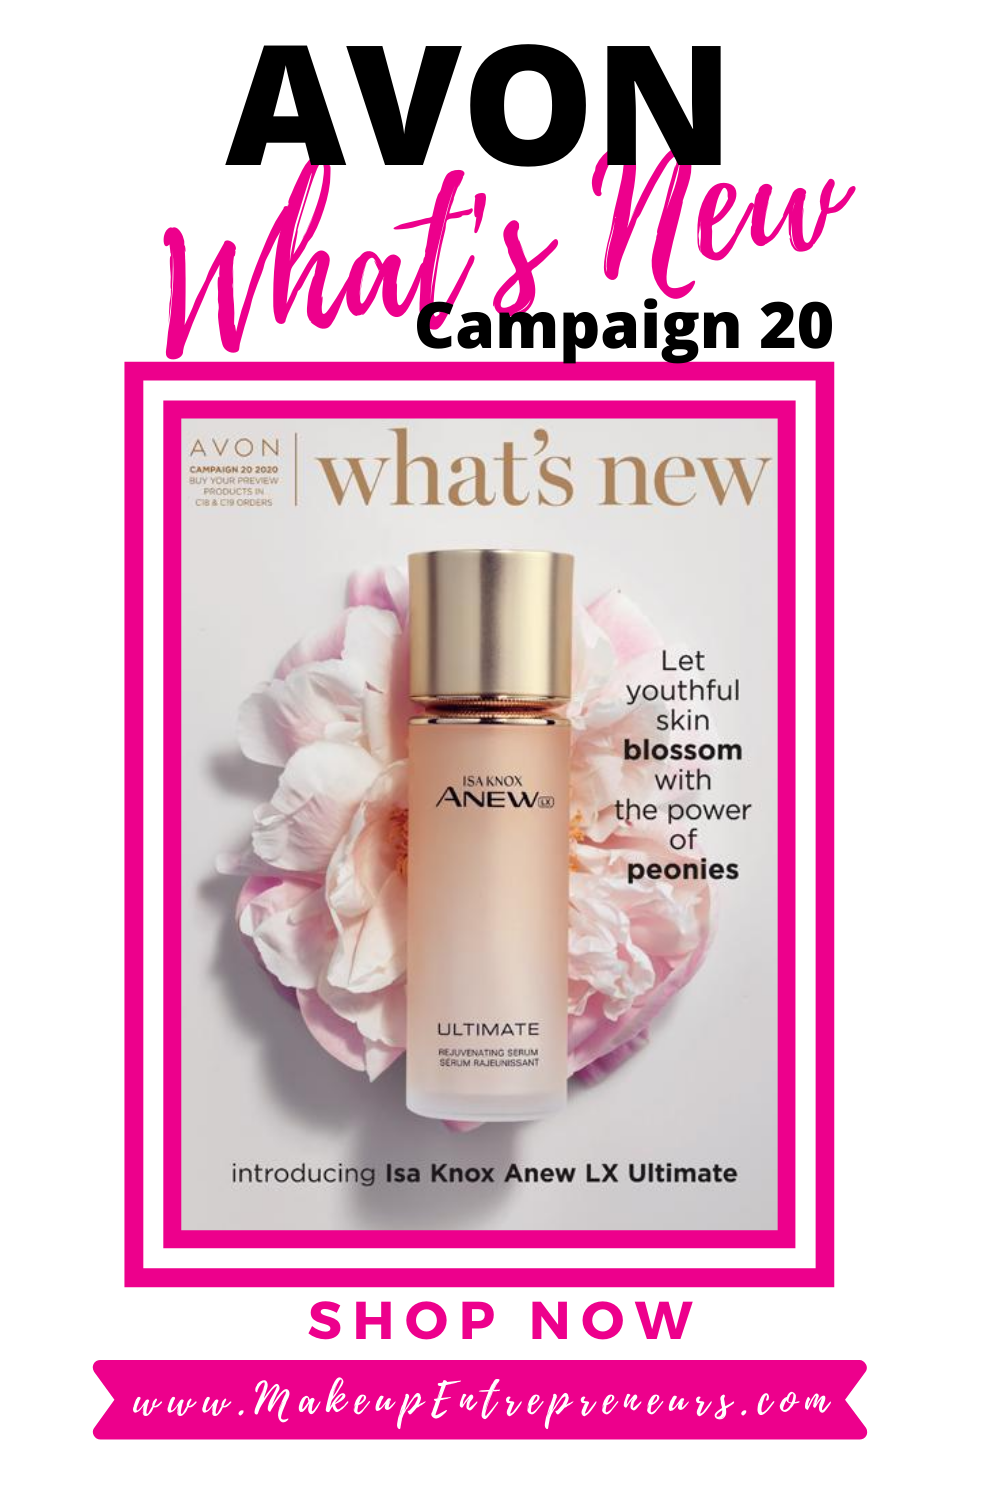 What's New AVON Campaign 20 2020 Brochure- Makeup Entrepreneurs